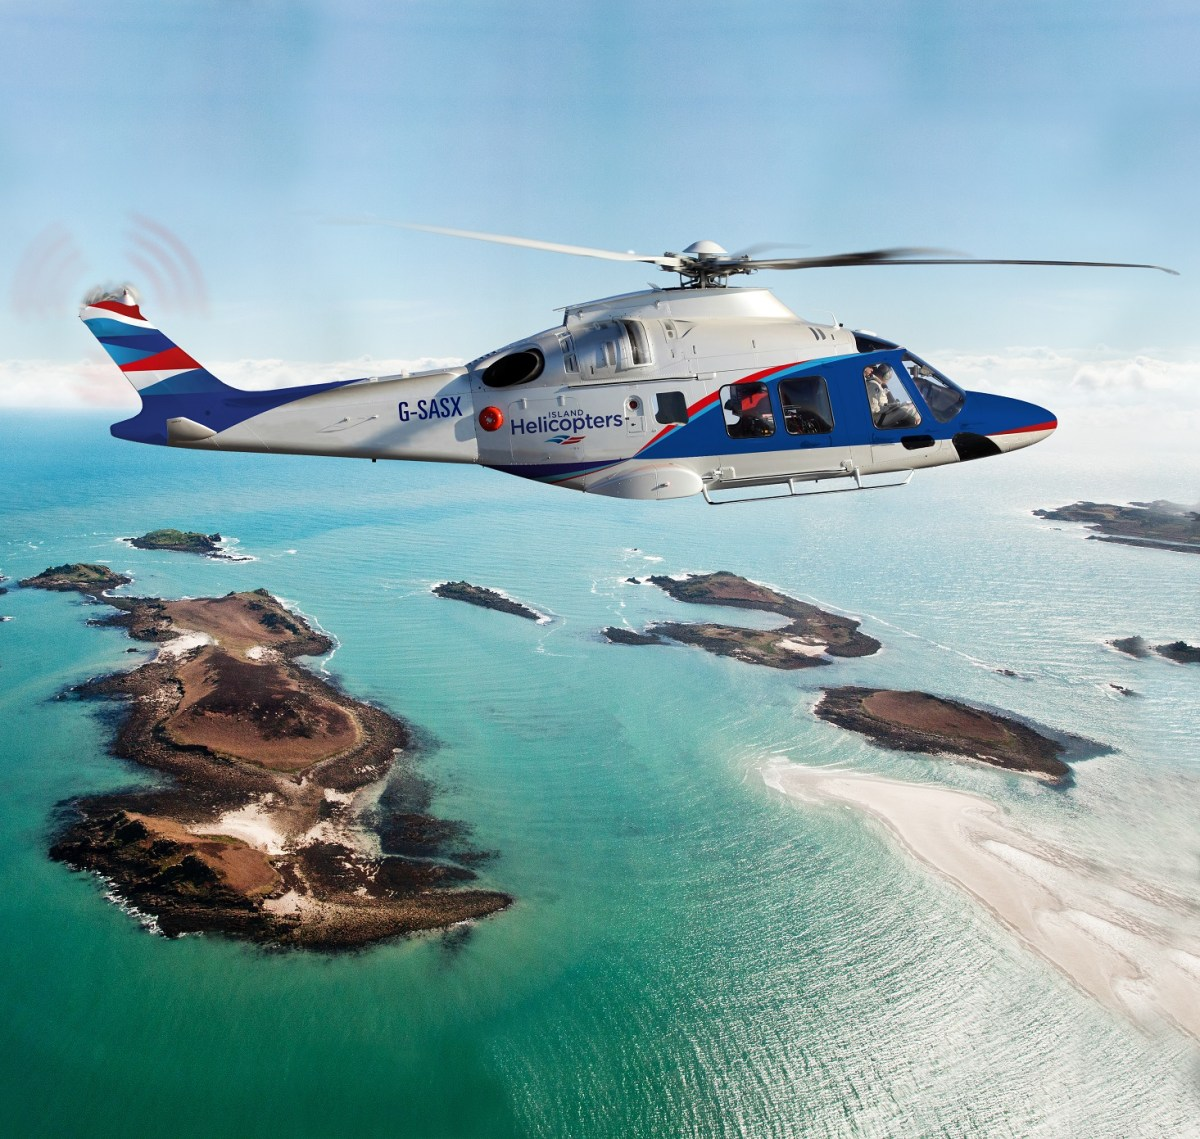 New helicopterservice from Land's End Airport to the Isles of Scilly